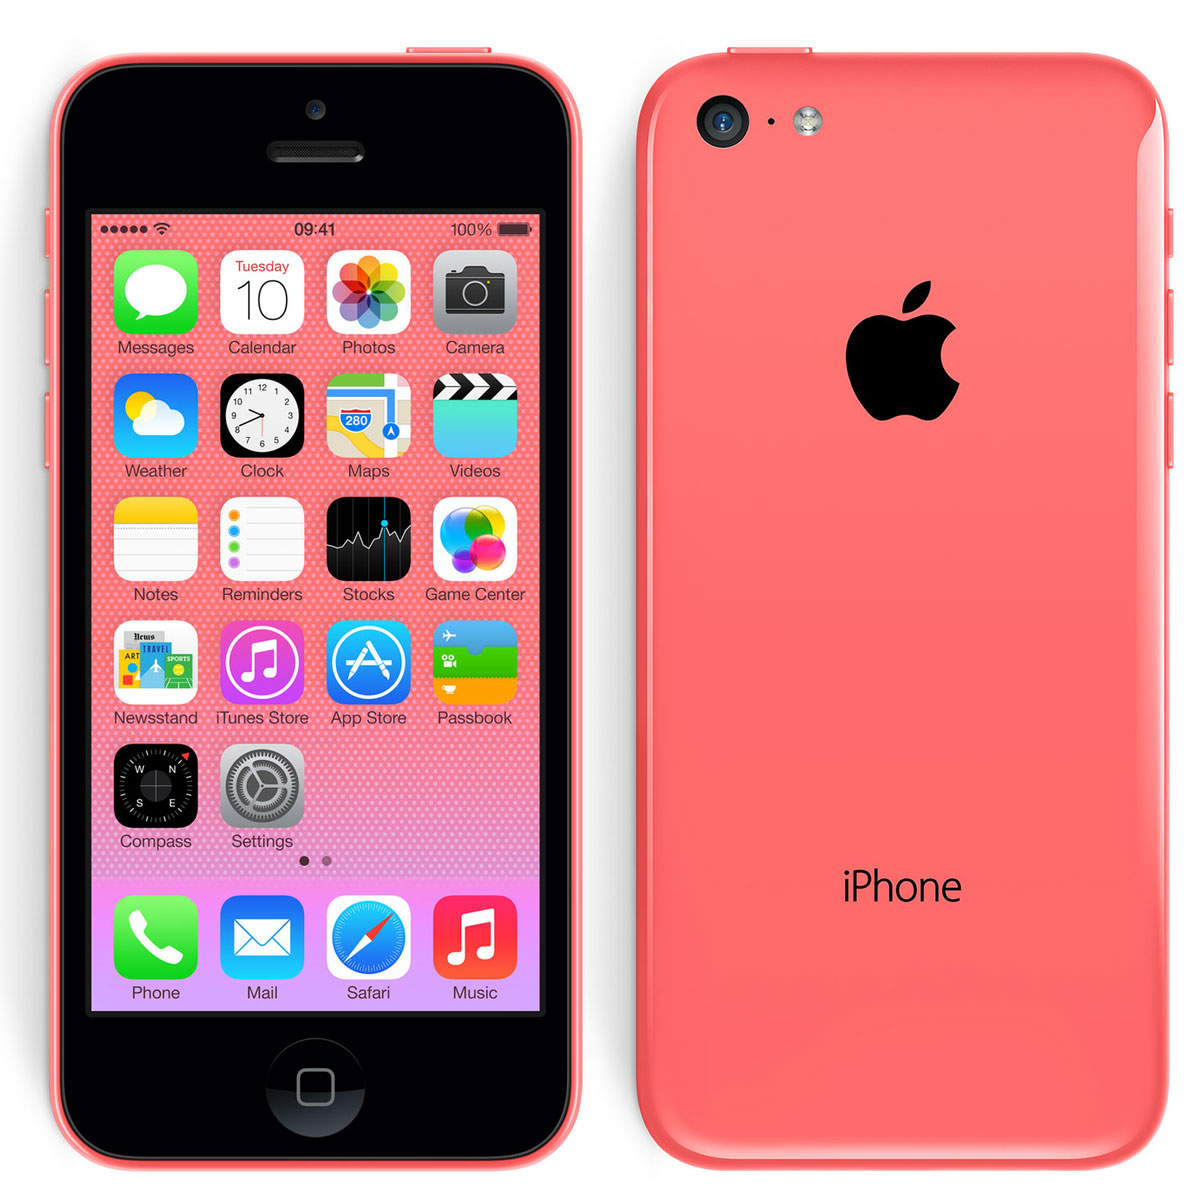 apple iphone 5c 16gb factory unlocked 4g lte smartphone ebay. Black Bedroom Furniture Sets. Home Design Ideas